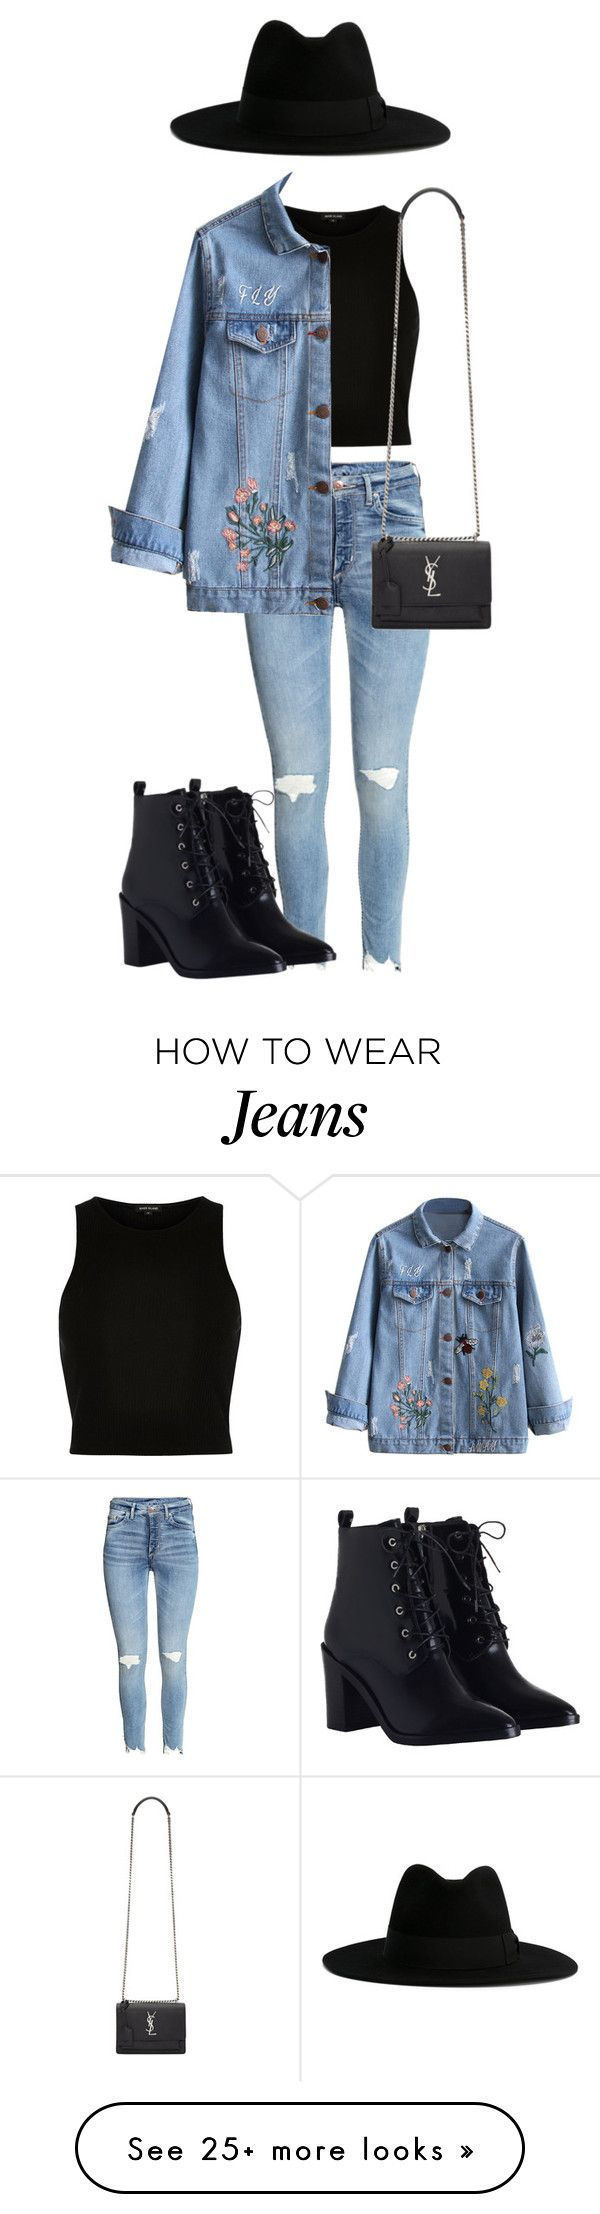 """""""Jeans + Jeans"""" by mamahstyle on Polyvore featuring River Island, Yves Saint Laurent and Zimmermann"""